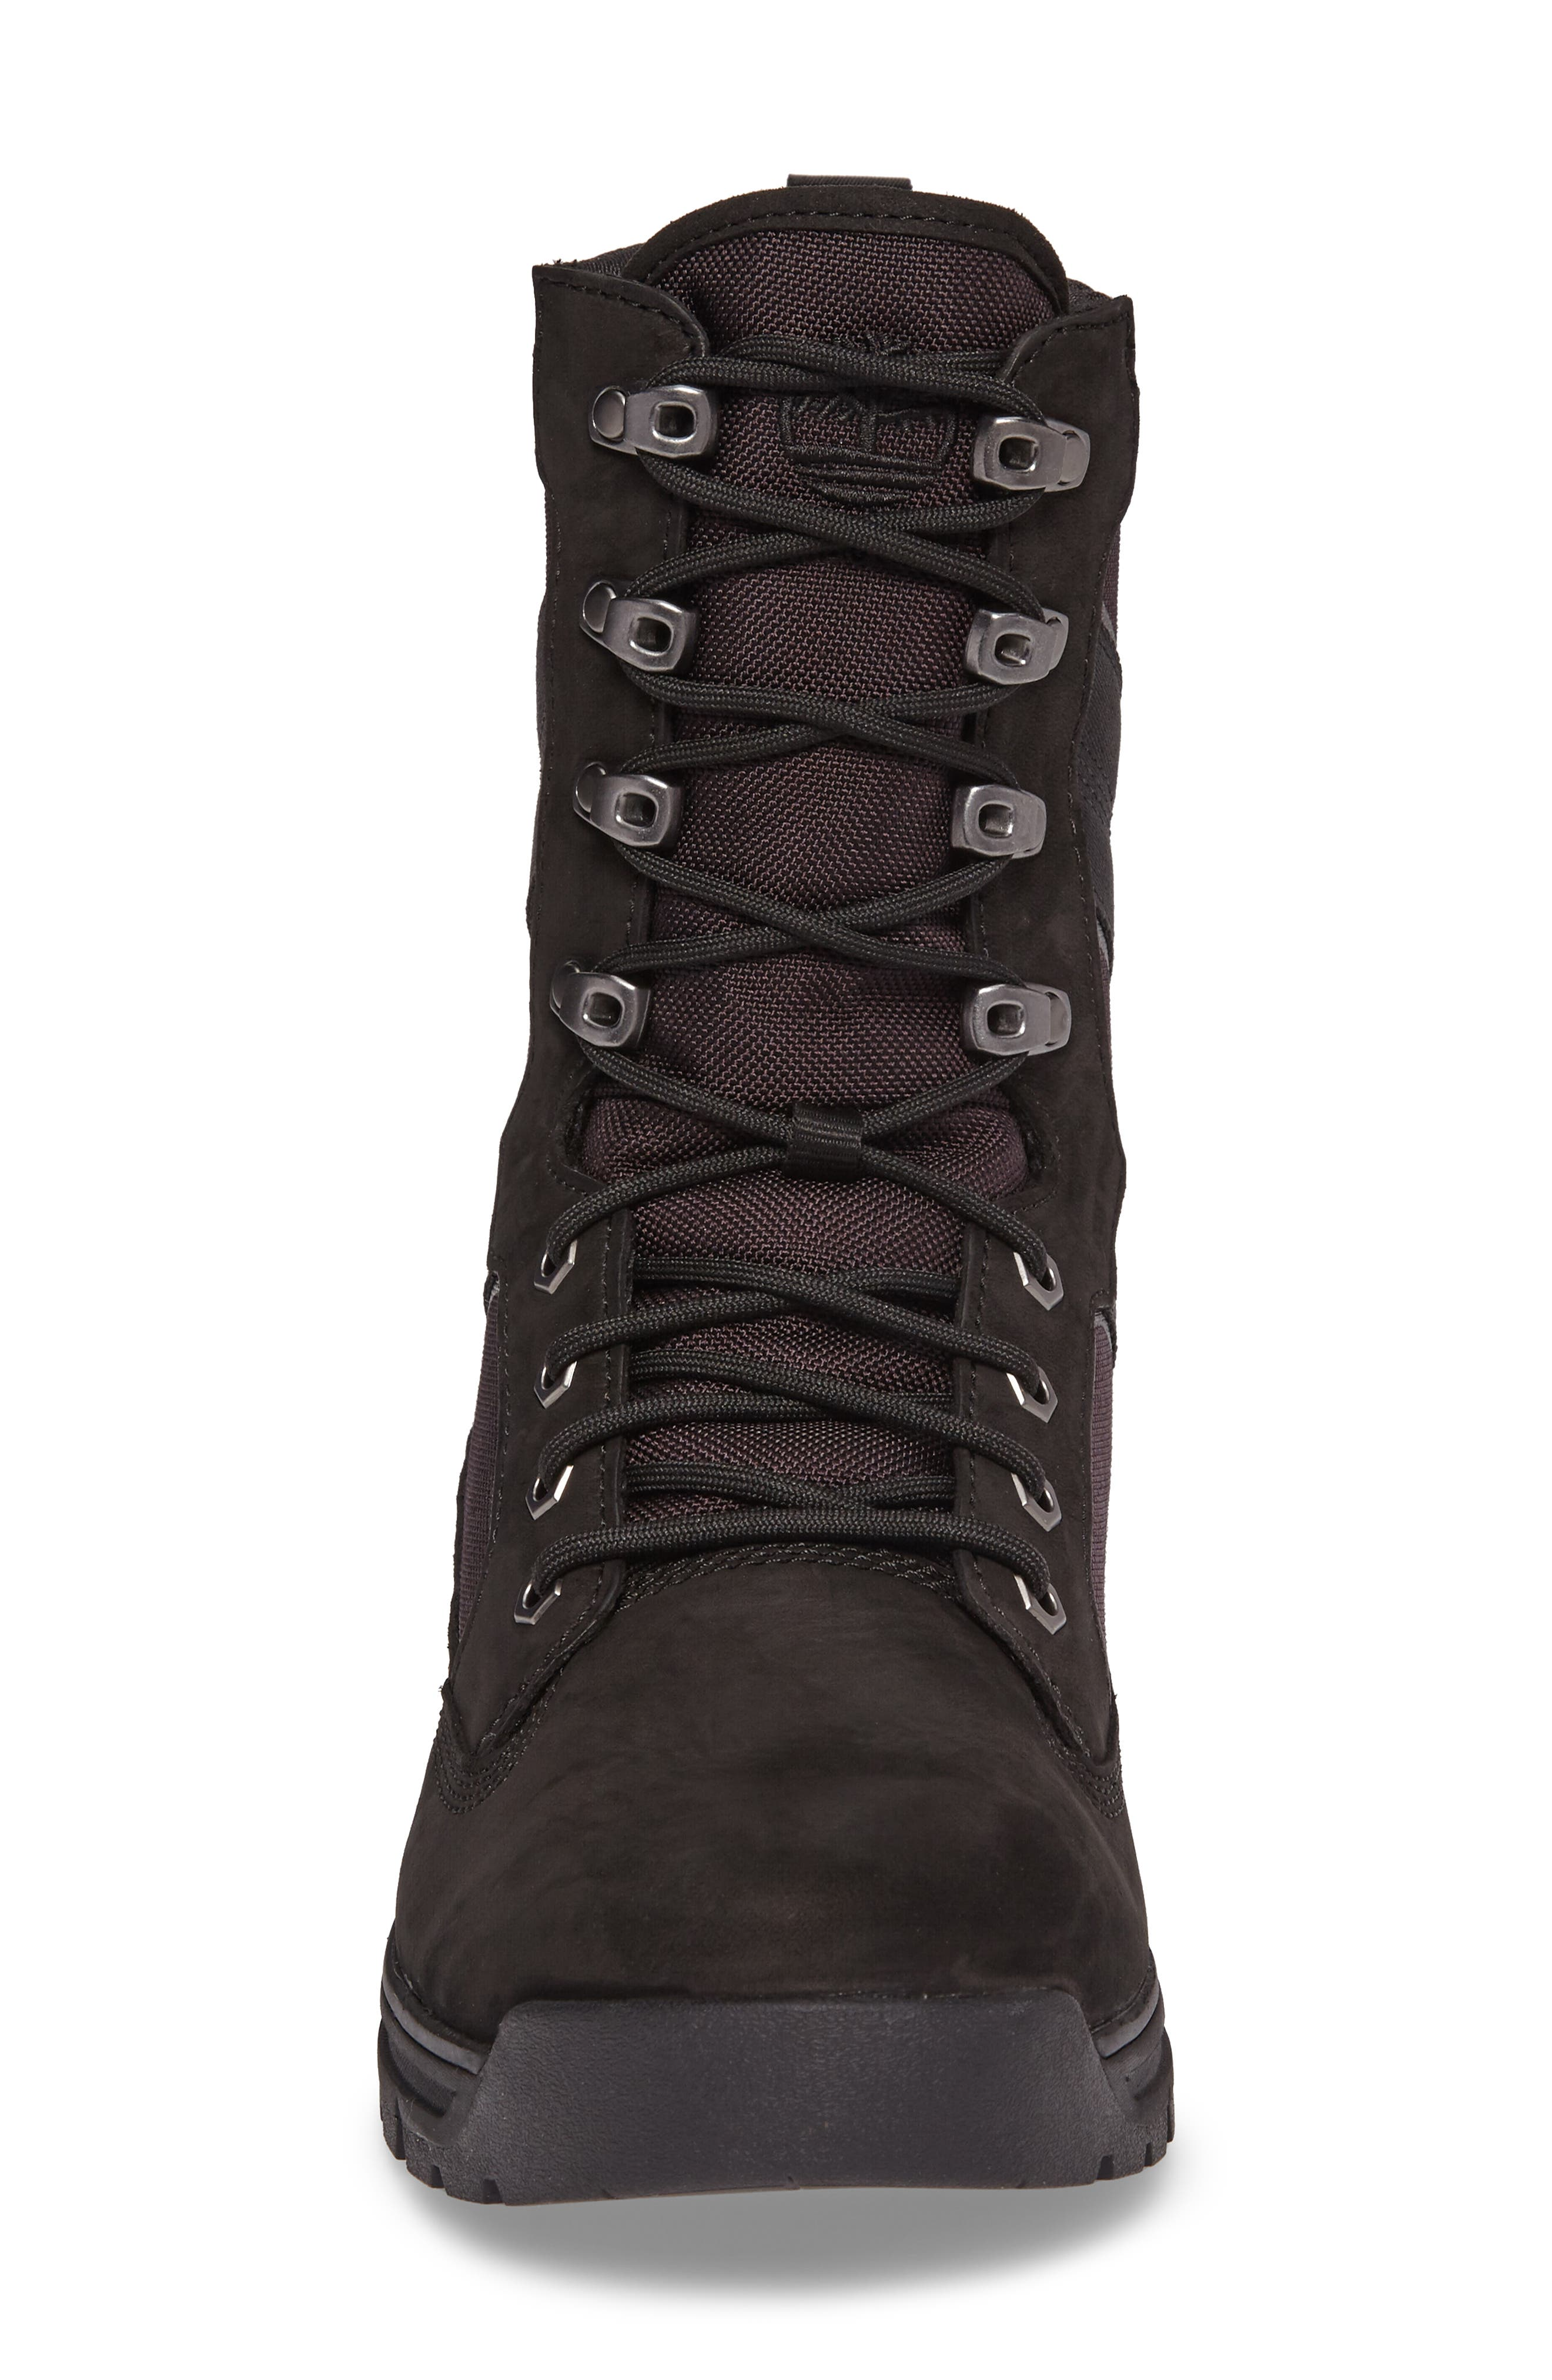 Field Guide Boot,                             Alternate thumbnail 4, color,                             Black Leather